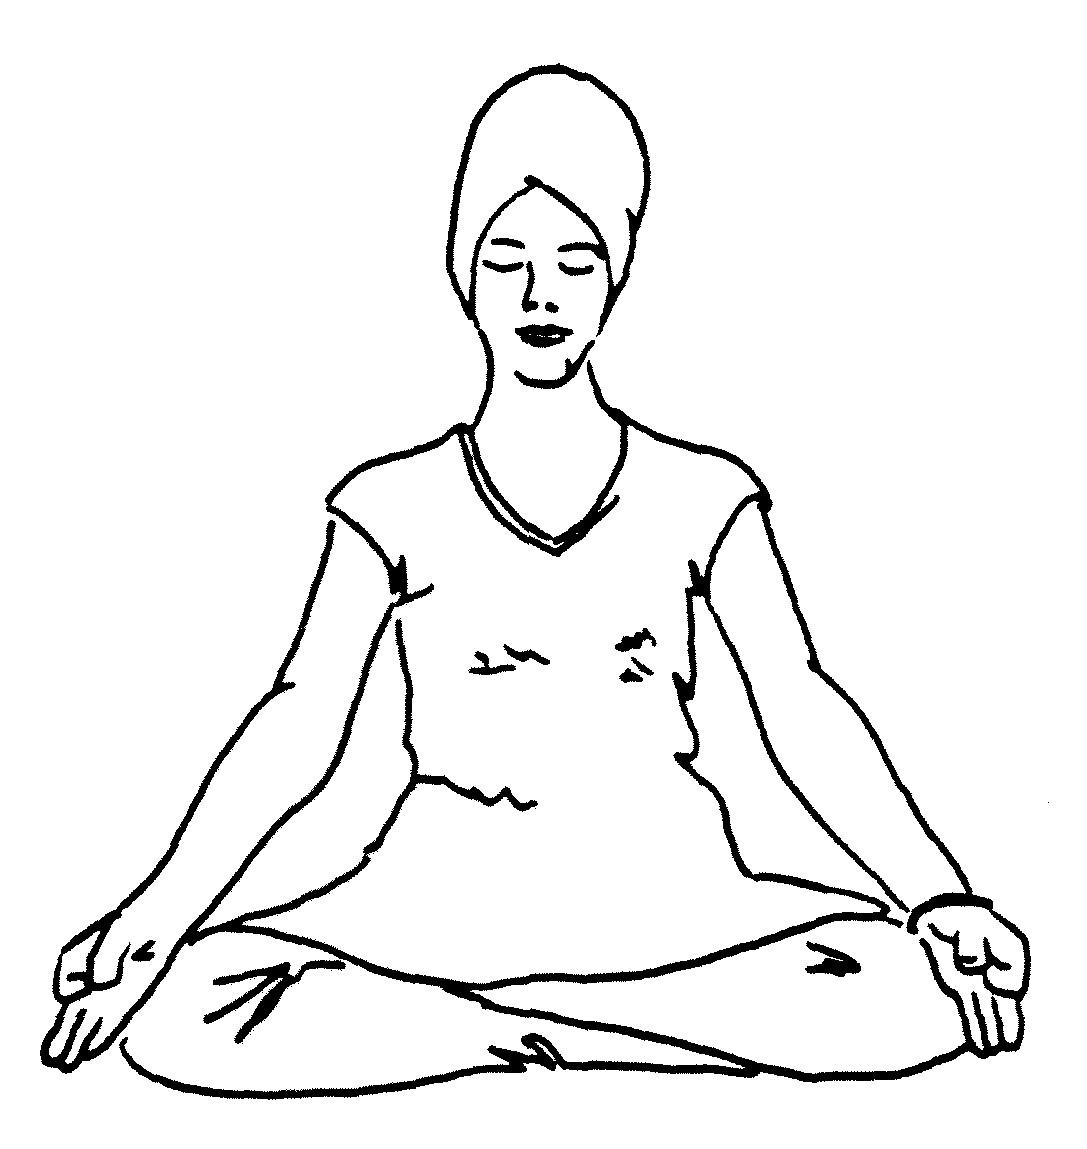 1087x1149 Ky Meditation To Prevent Aging